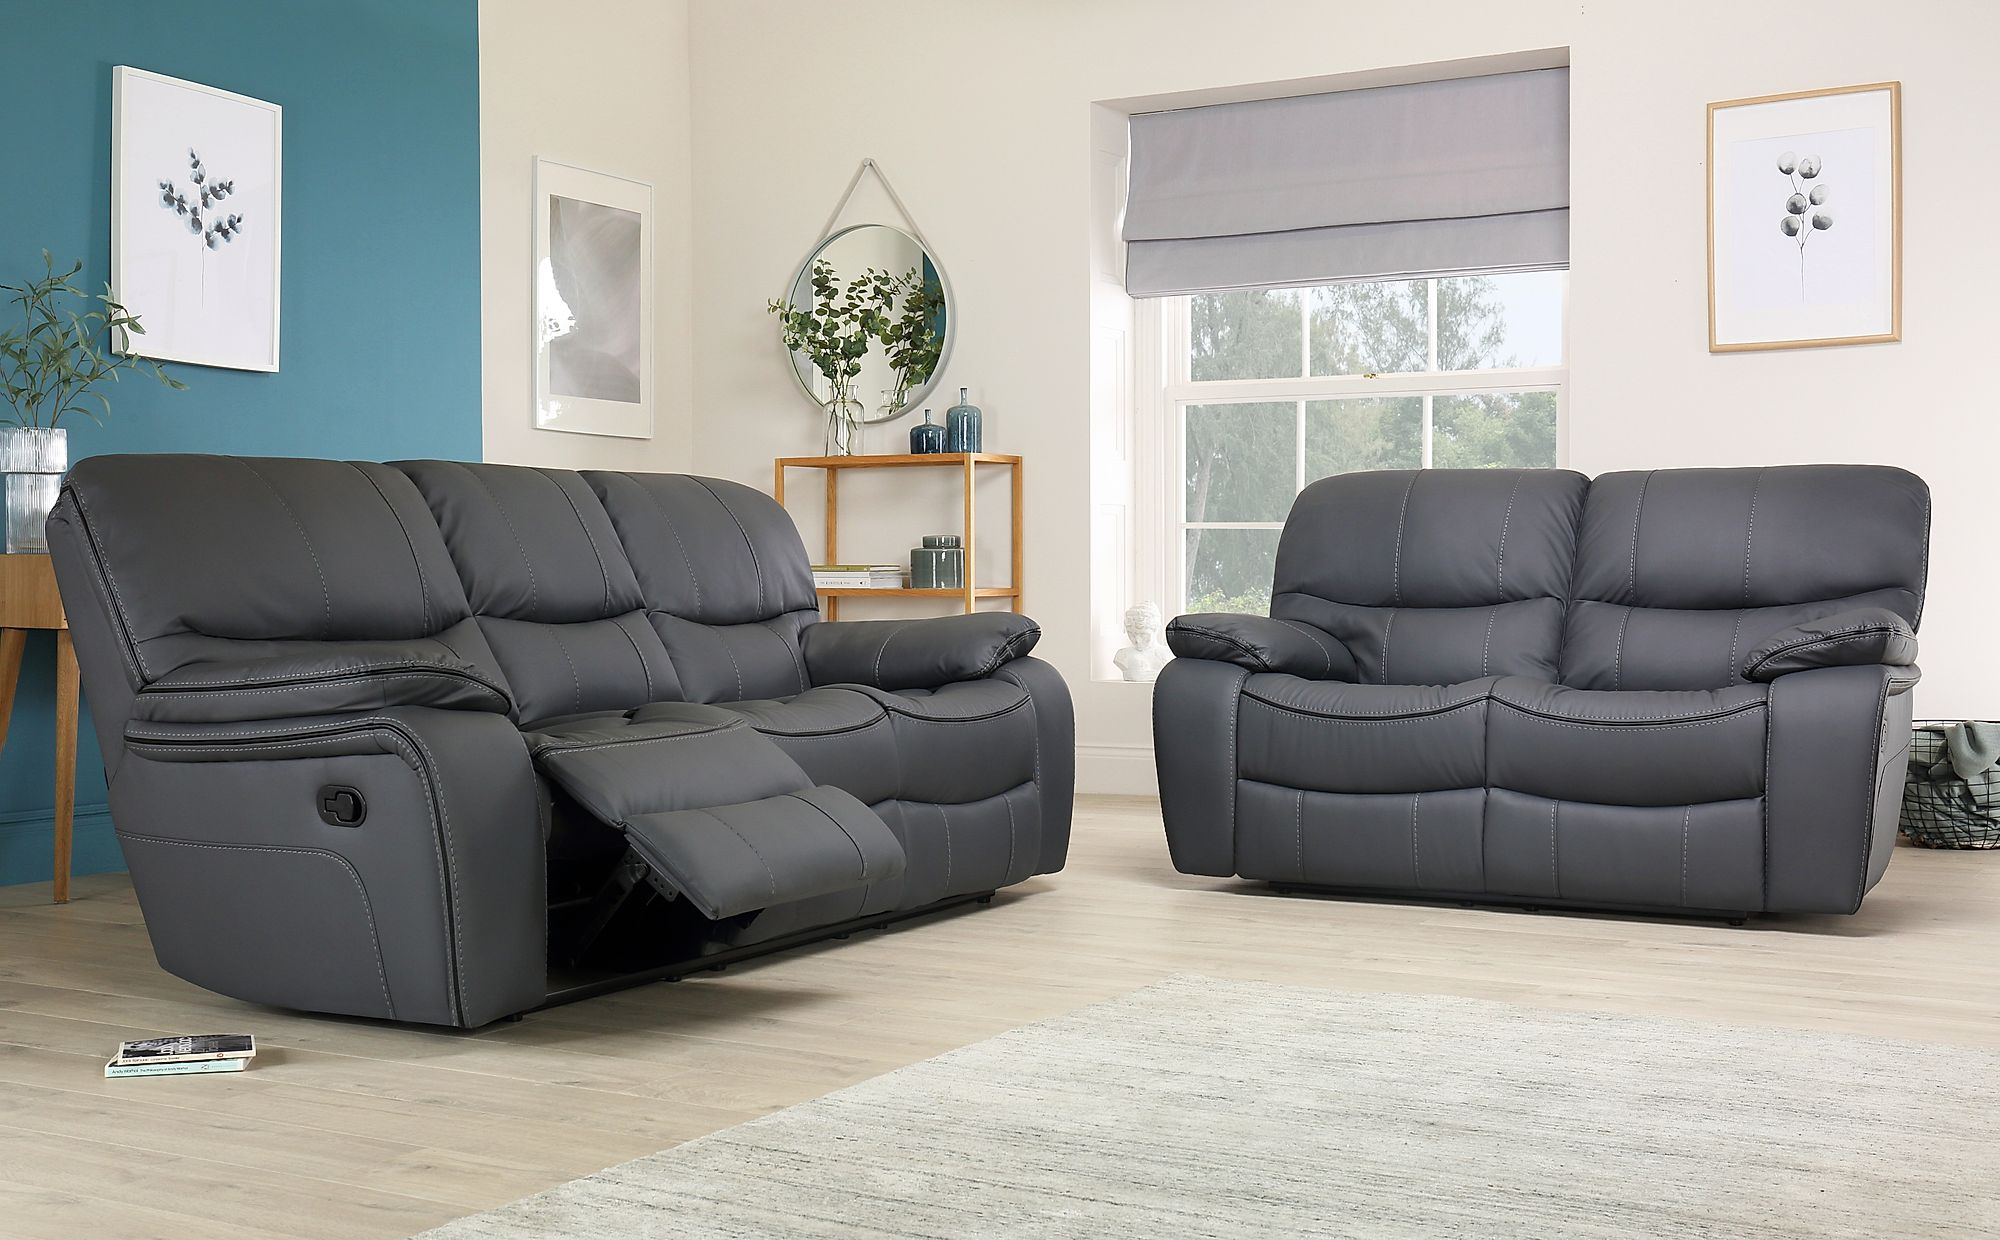 Beaumont Grey Leather 3 2 Seater Recliner Sofa Set